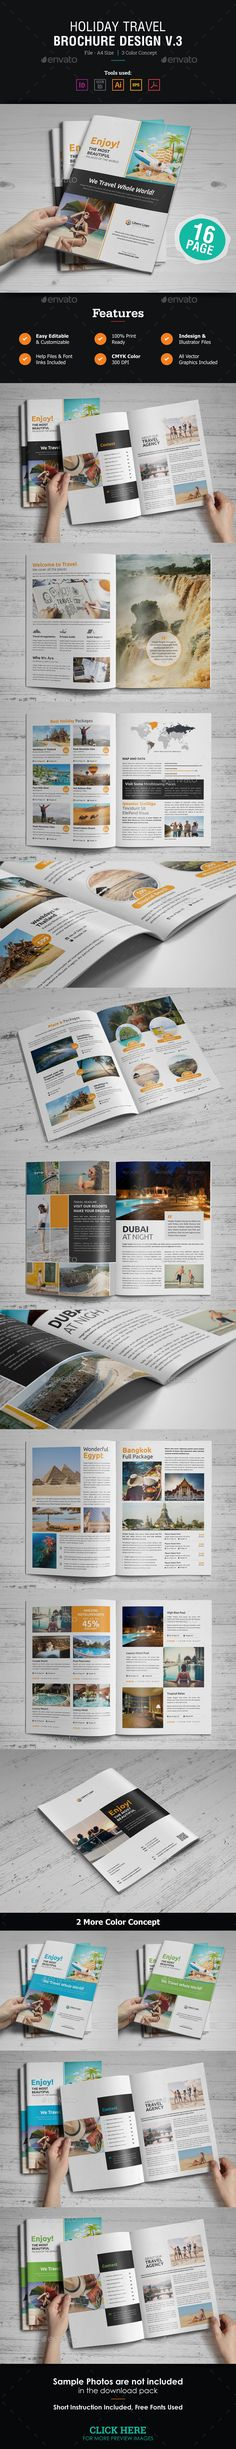 Holiday Travel Brochure Design Template 16 Pages Vector EPS, InDesign INDD, AI Illustrator